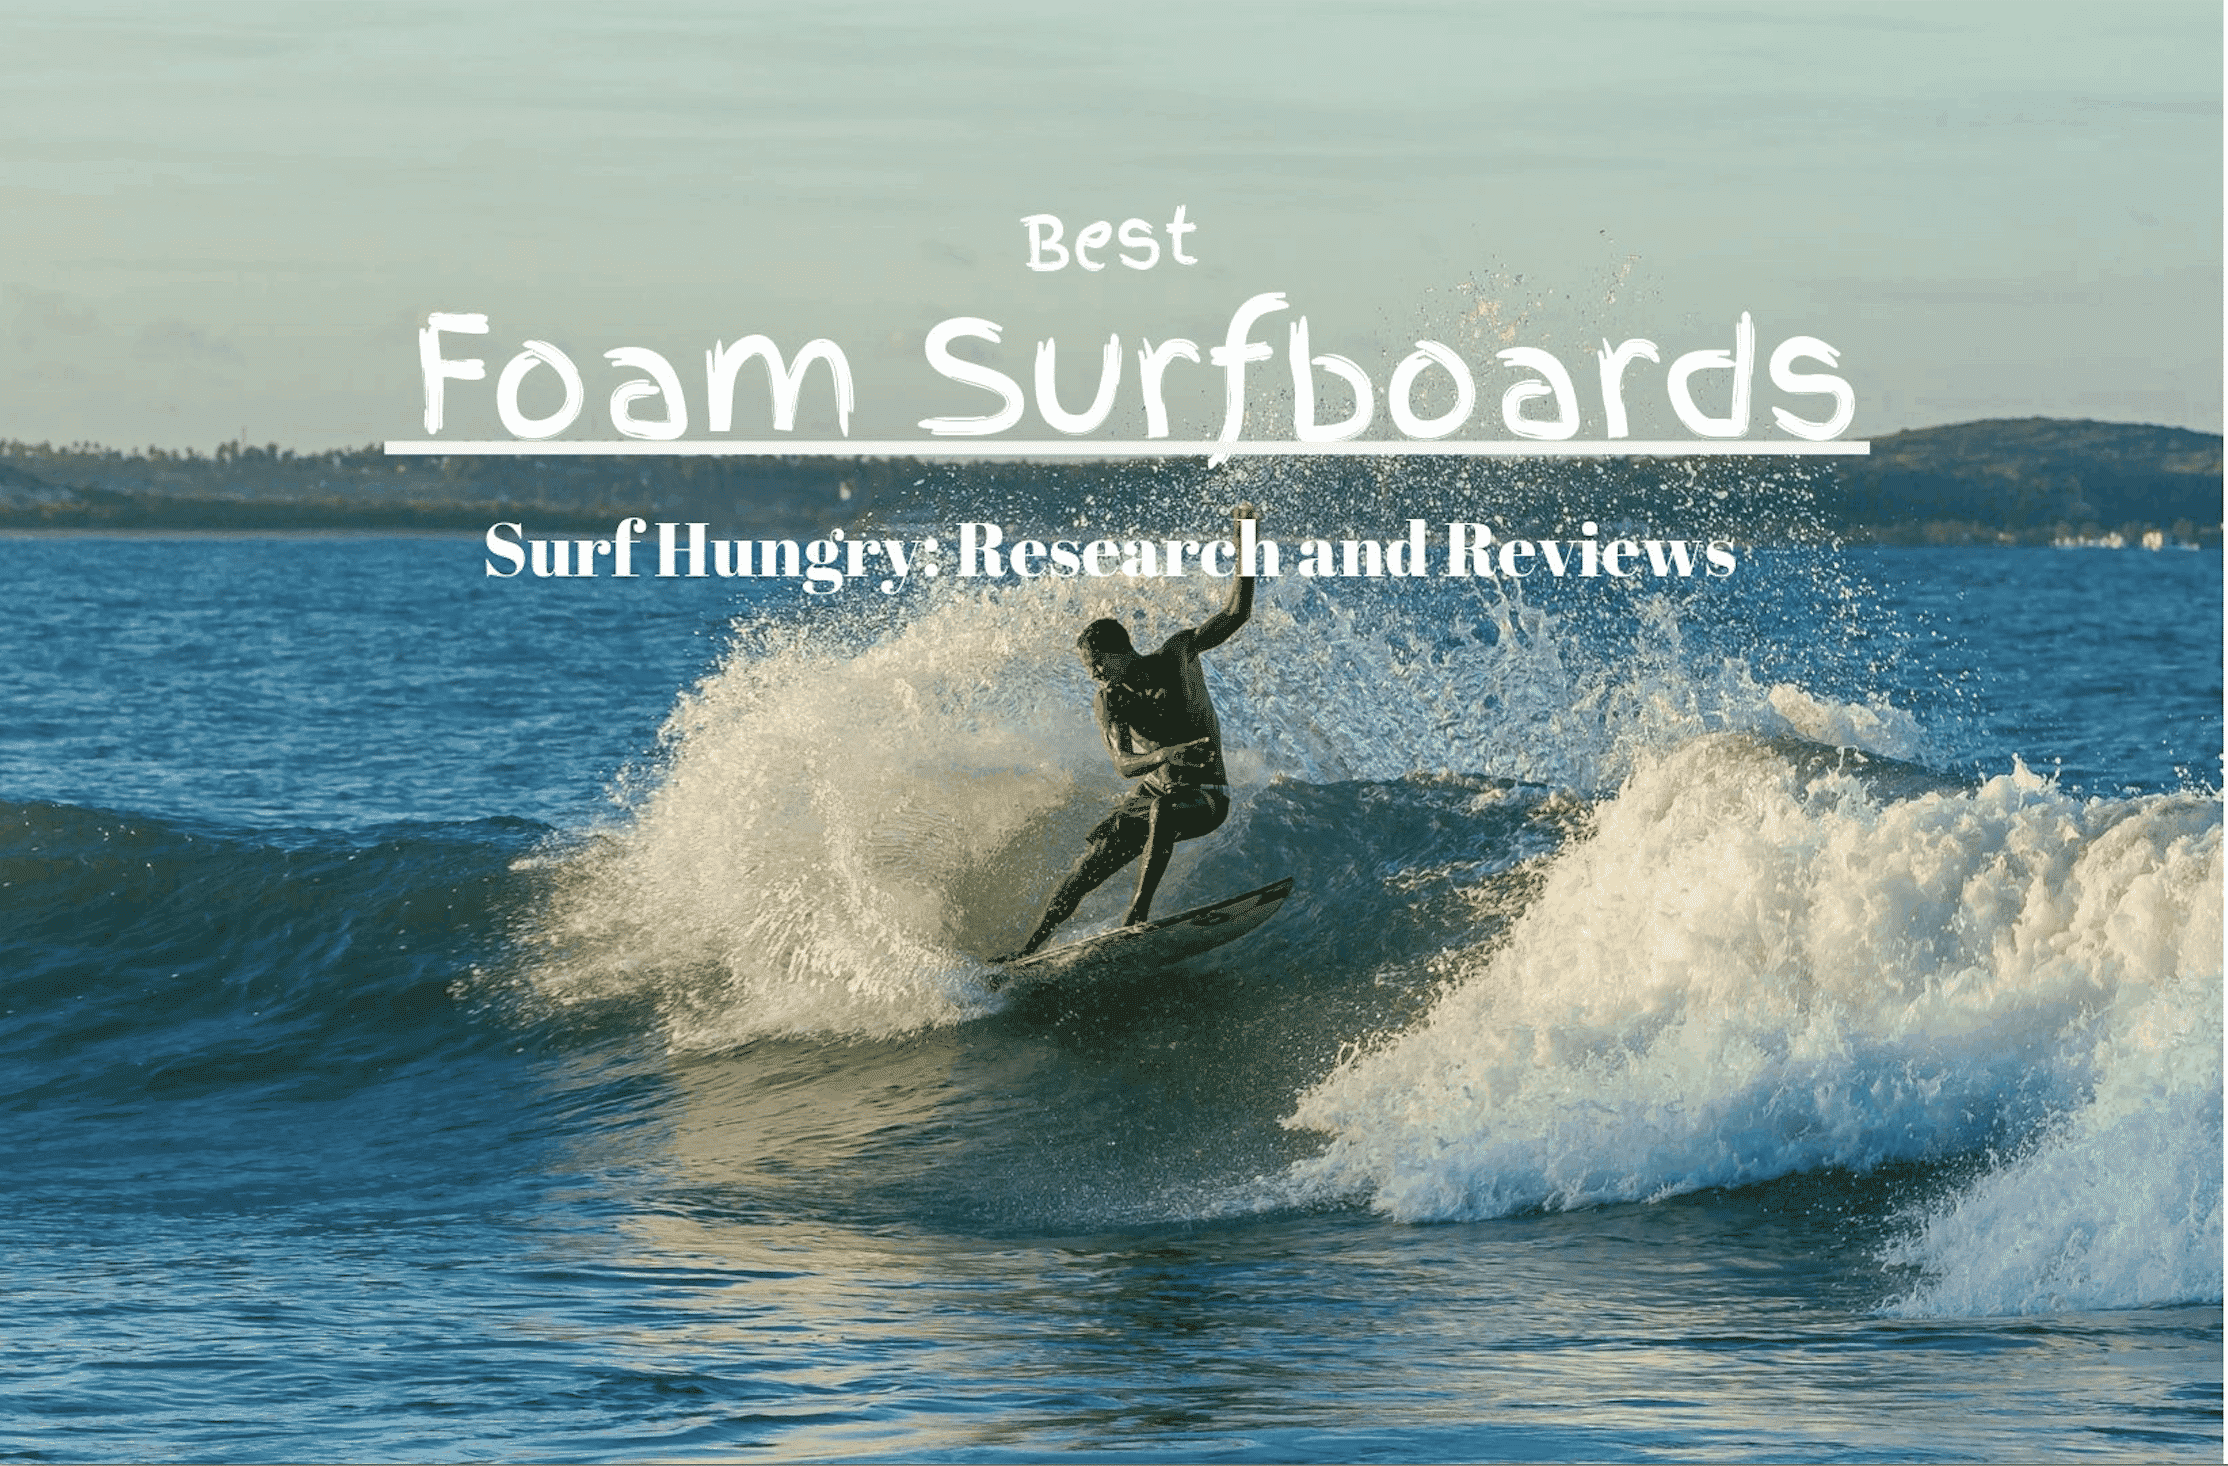 best foam surfboards